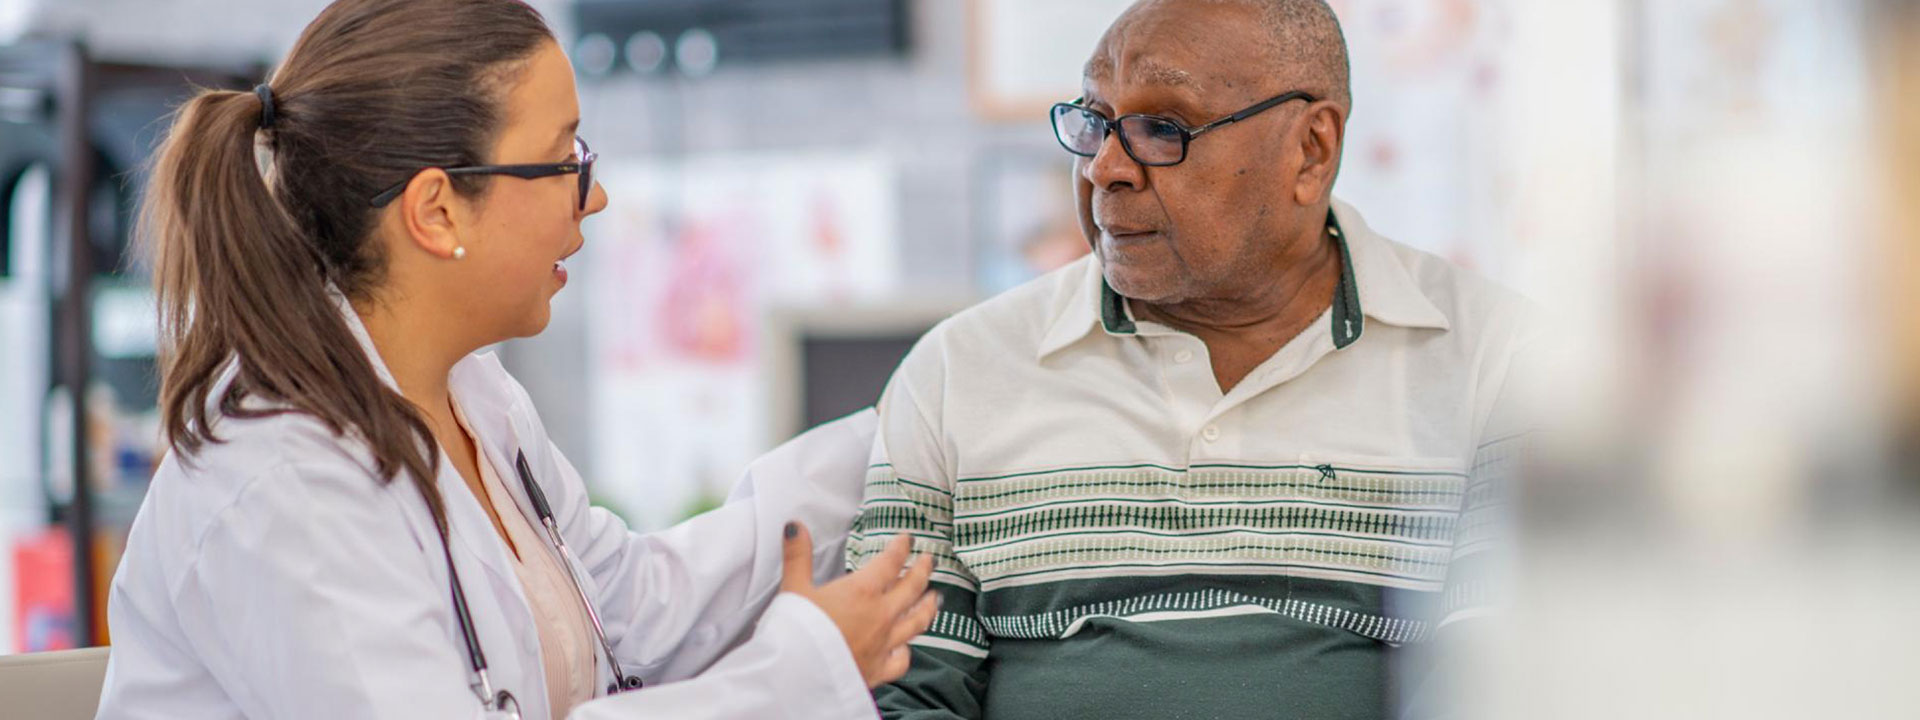 Female medical professional and older black man conversing.